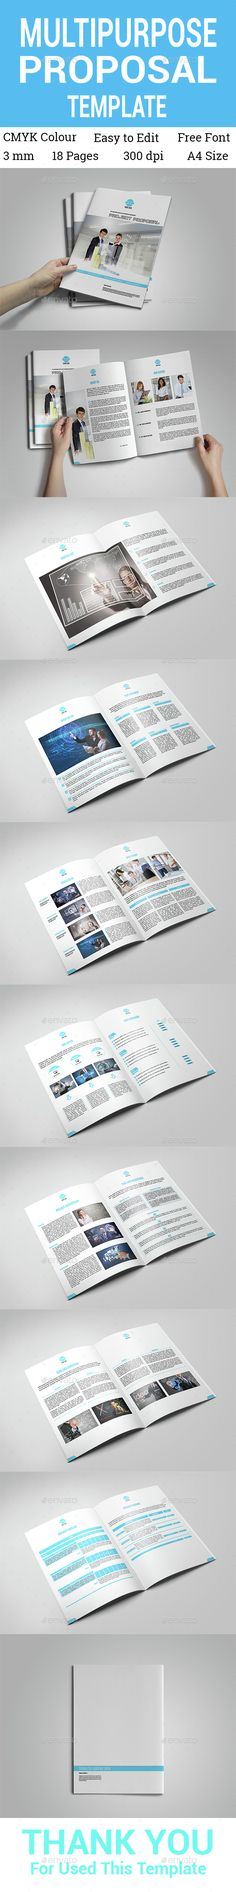 Raisa - Proposal Template Proposal templates and Proposals - proposal templates